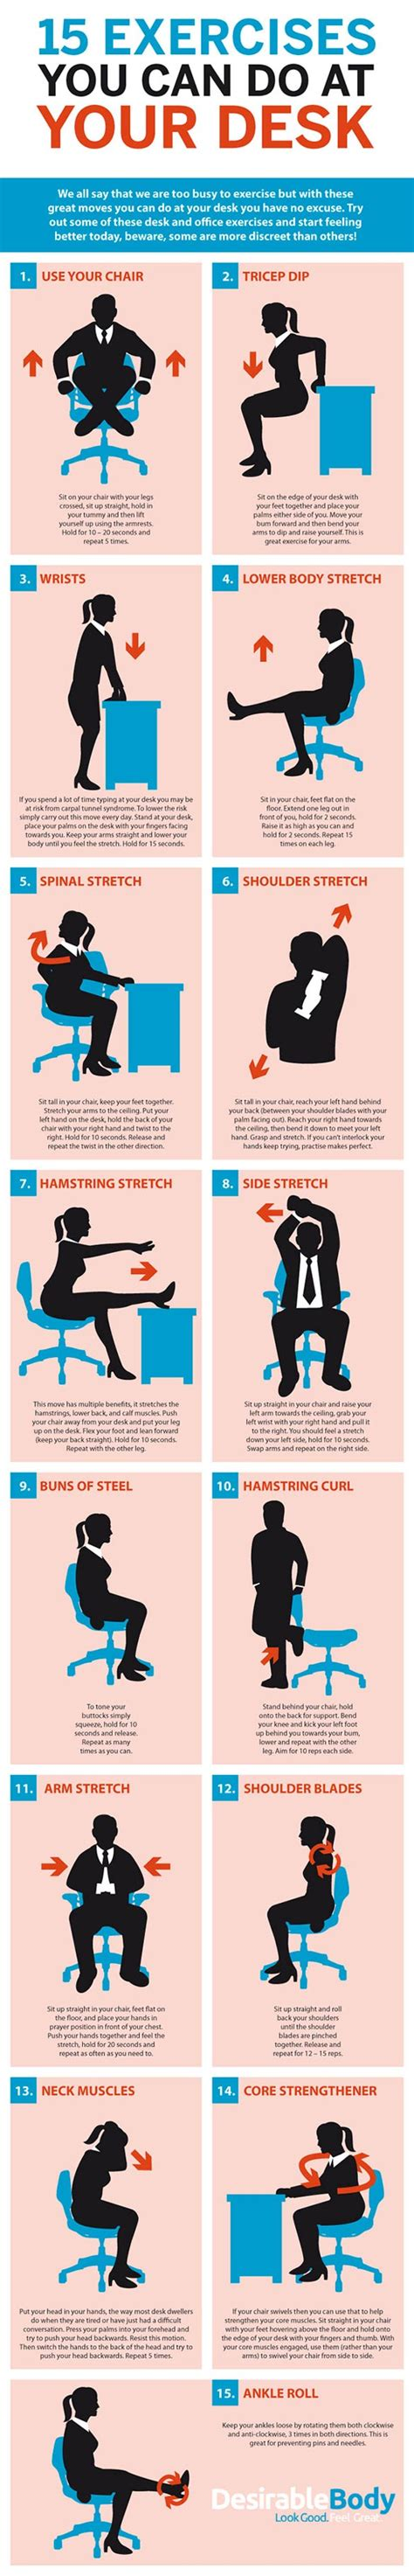 desk exercises at work 15 exercises you can do at your desk